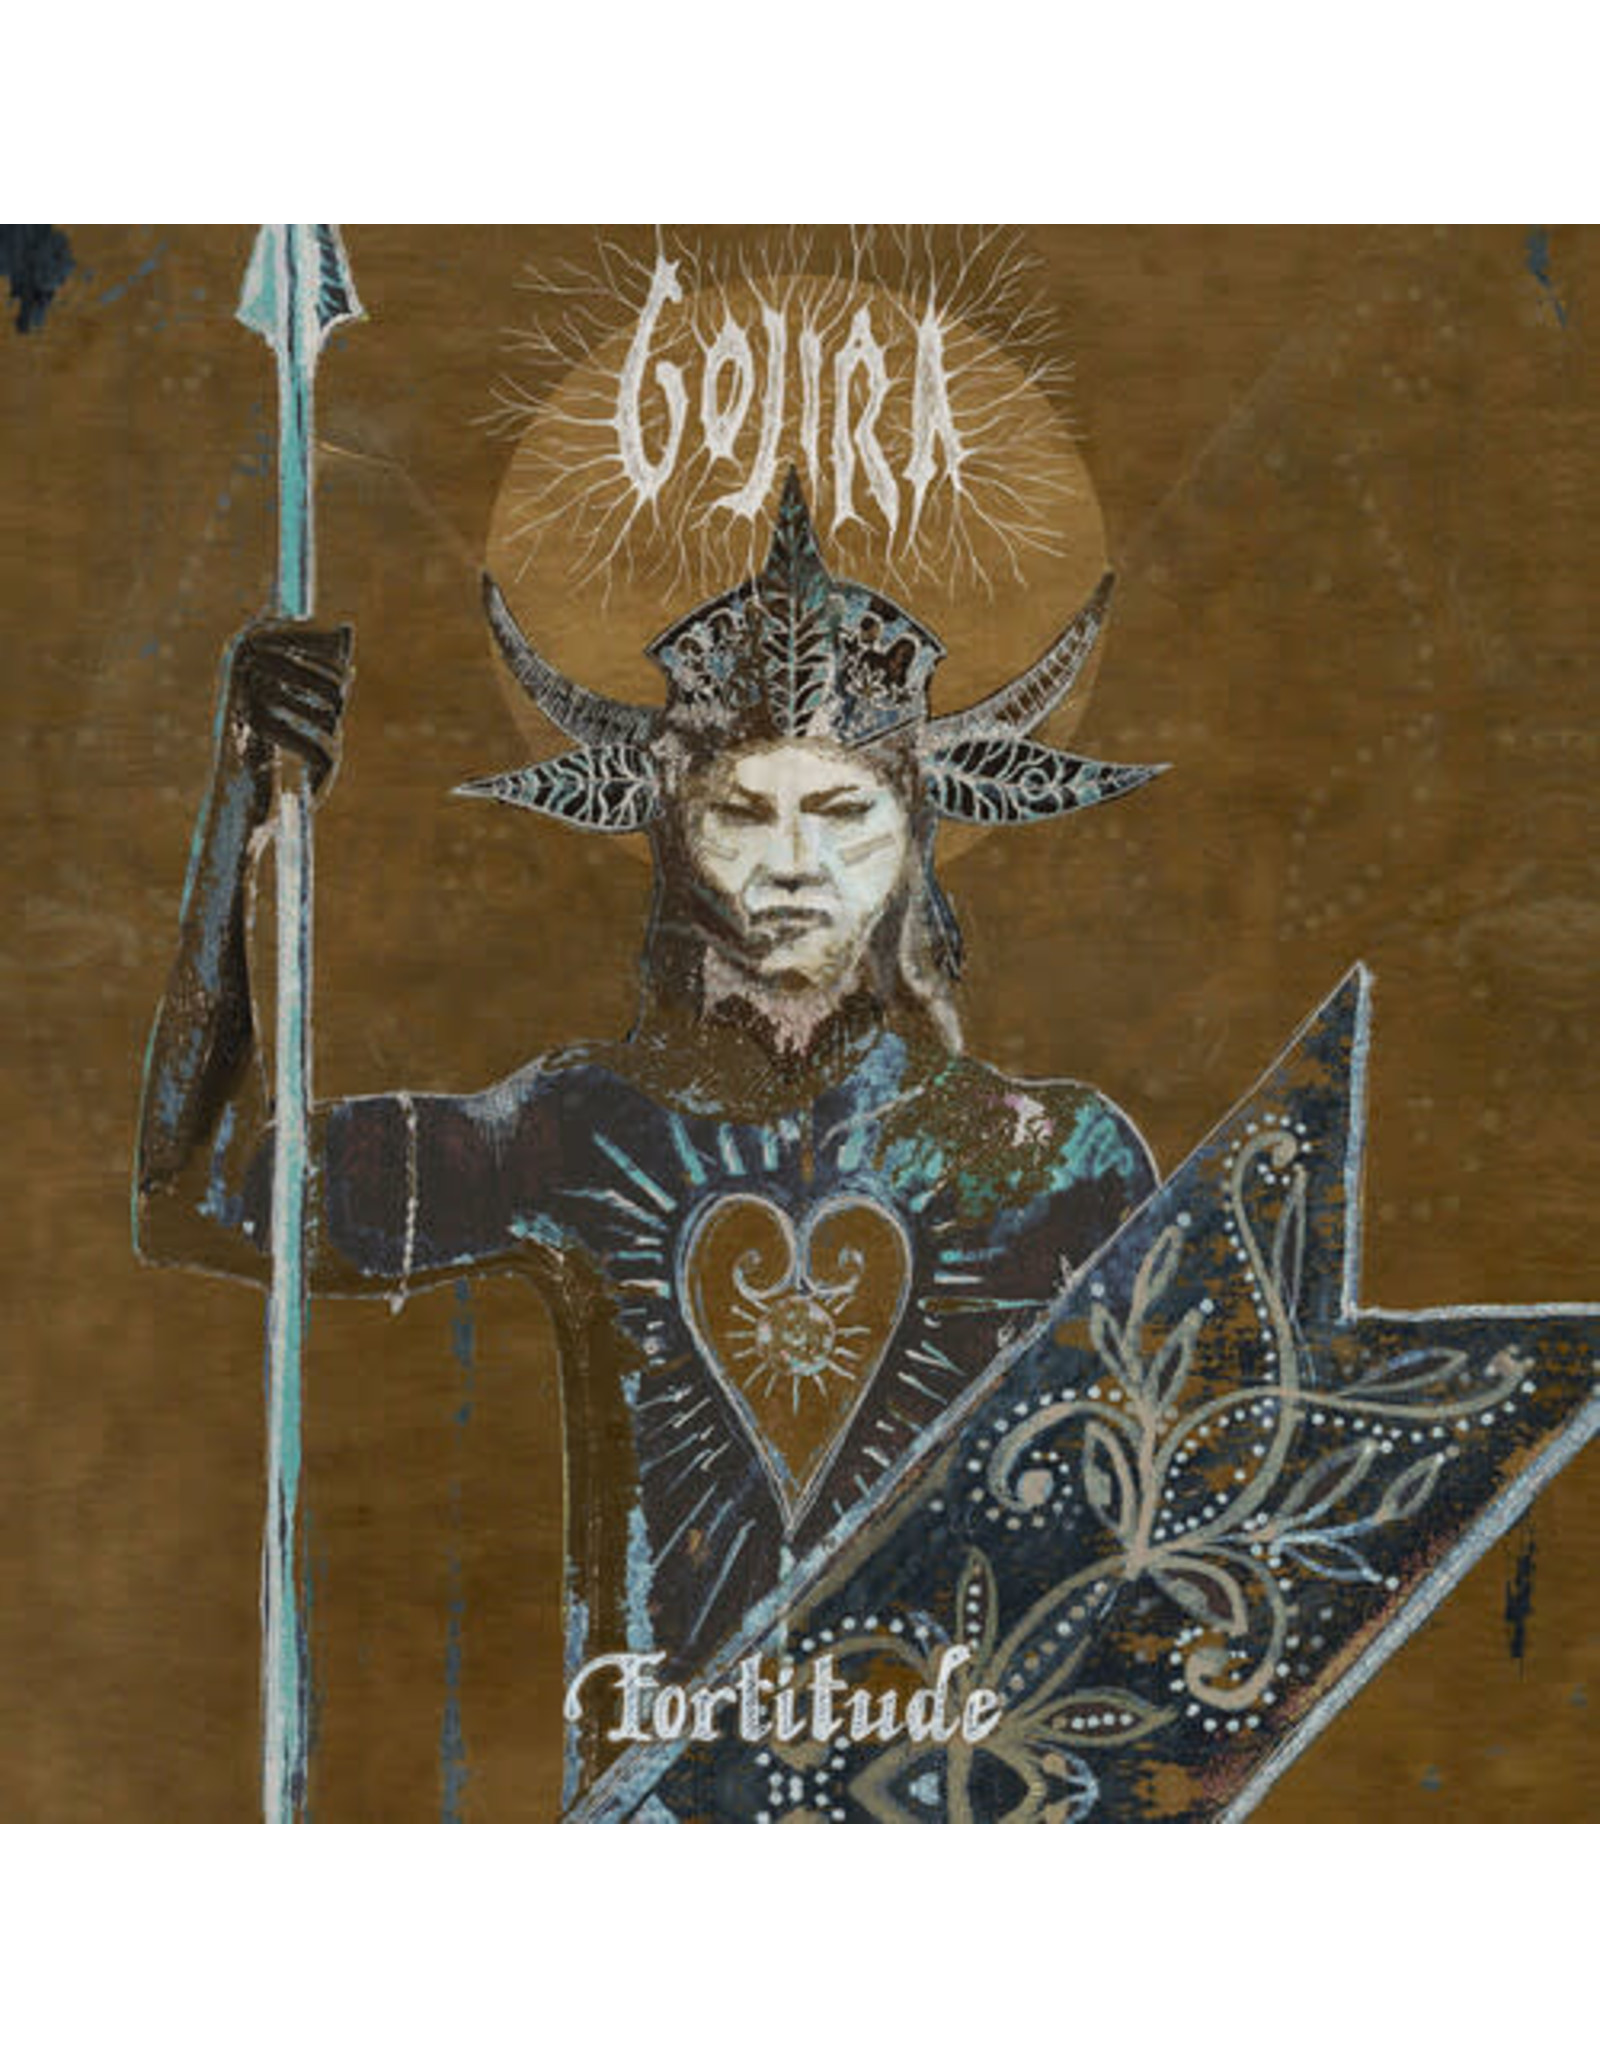 Gojira / Fortitude (Colored Vinyl)